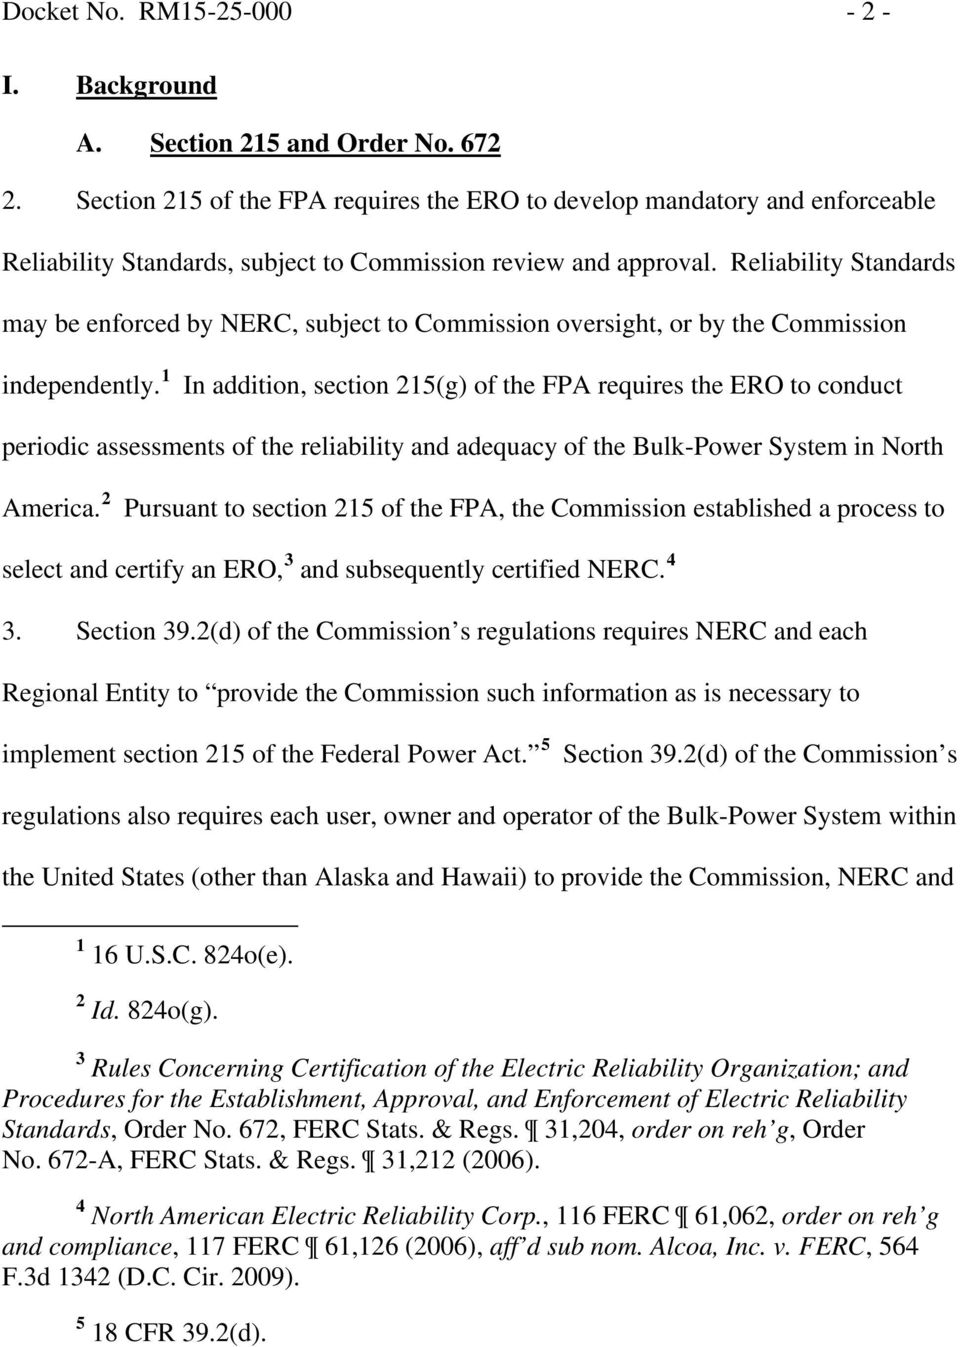 Reliability Standards may be enforced by NERC, subject to Commission oversight, or by the Commission independently.